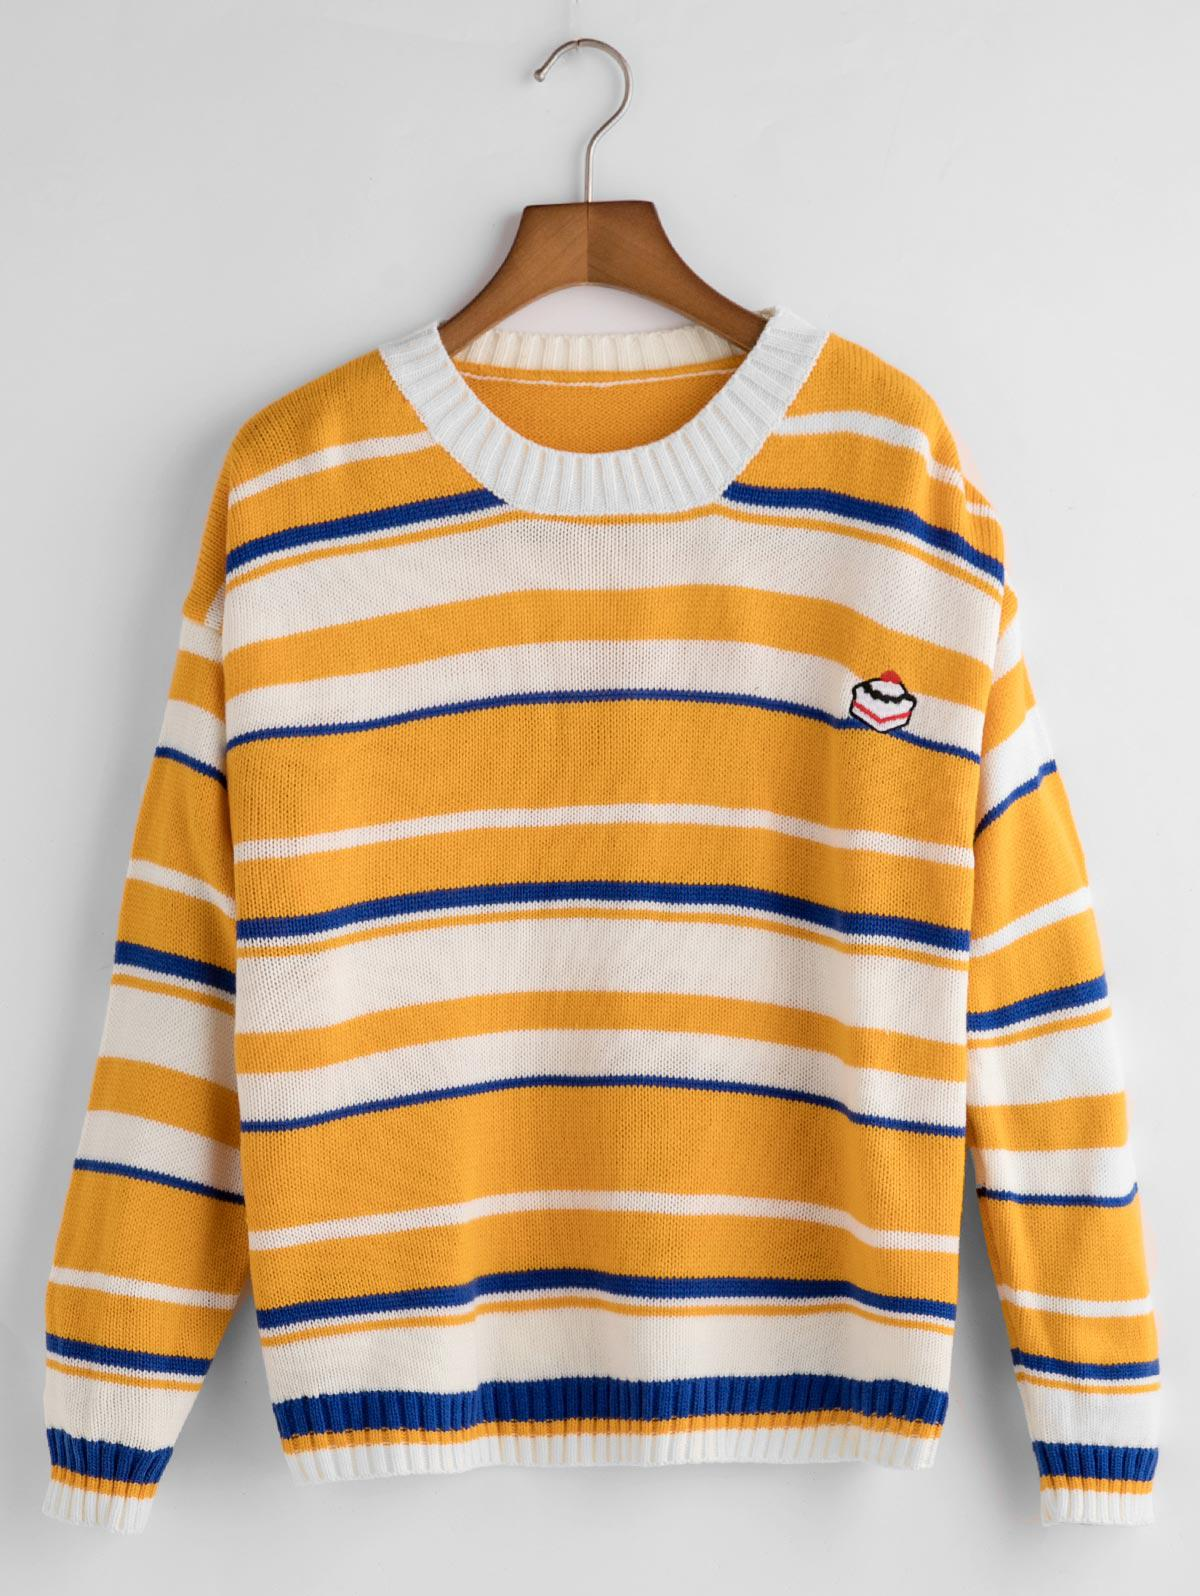 Funny Embroidery Striped Sweater